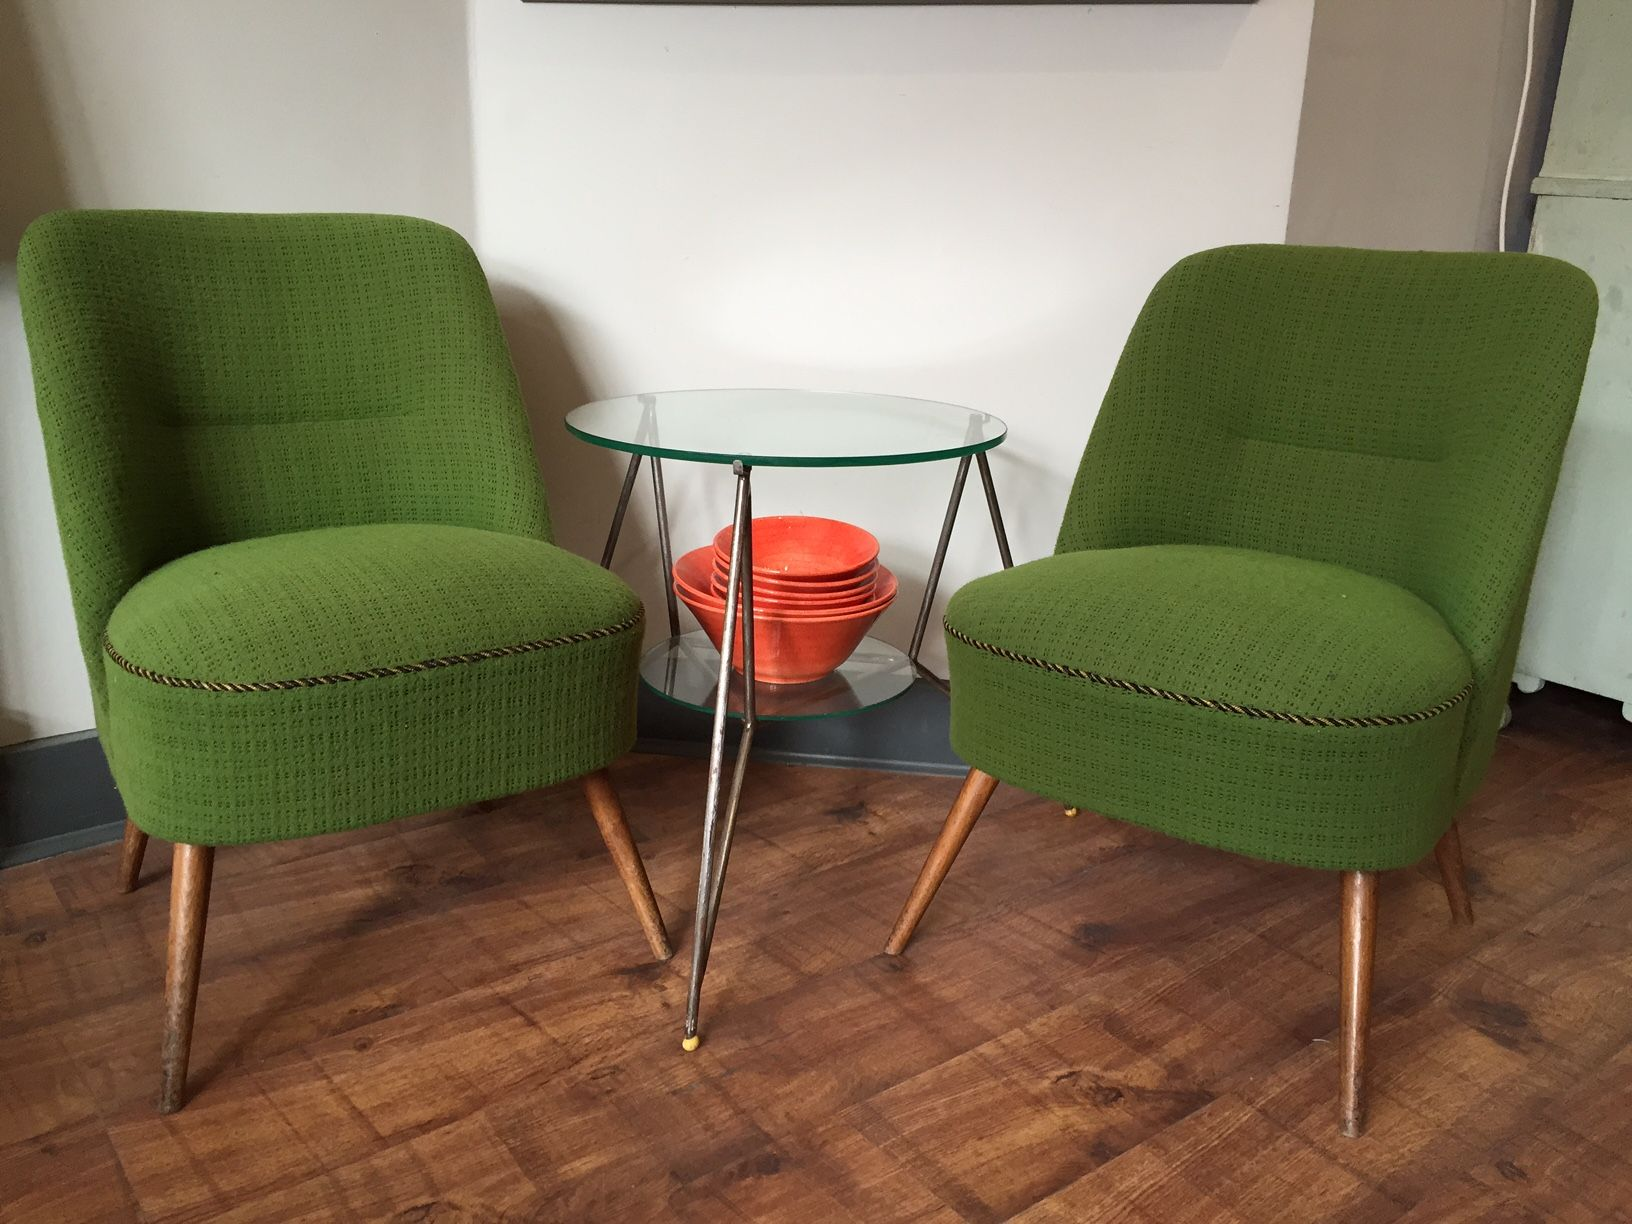 Charmant New Mid Century Occasional Chairs In Gorgeous Retro Pea Green Fabric. Four  Available, For